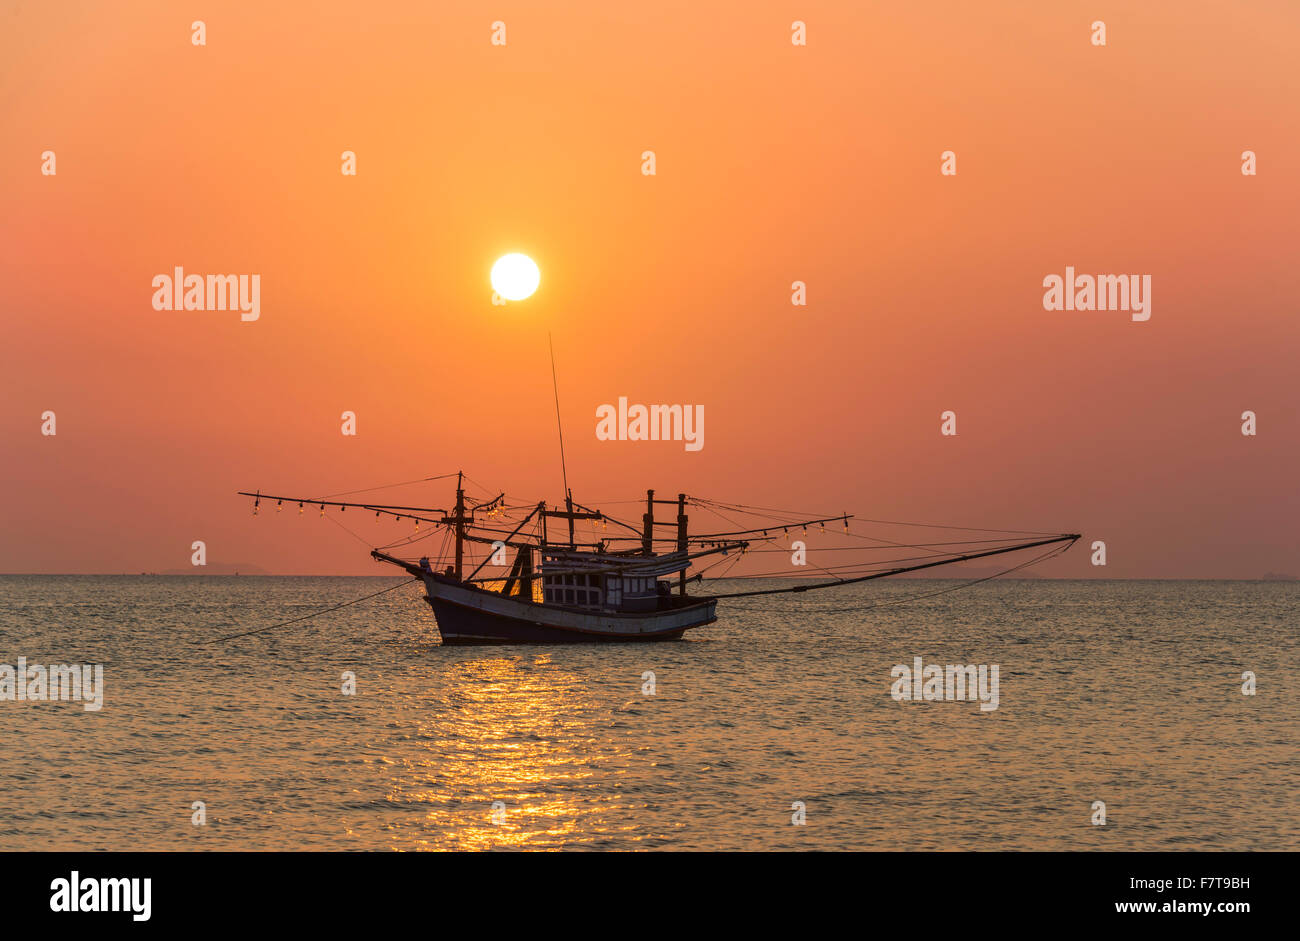 Boat in the sea at sunset, Koh Samui, Gulf of Thailand, Thailand - Stock Image